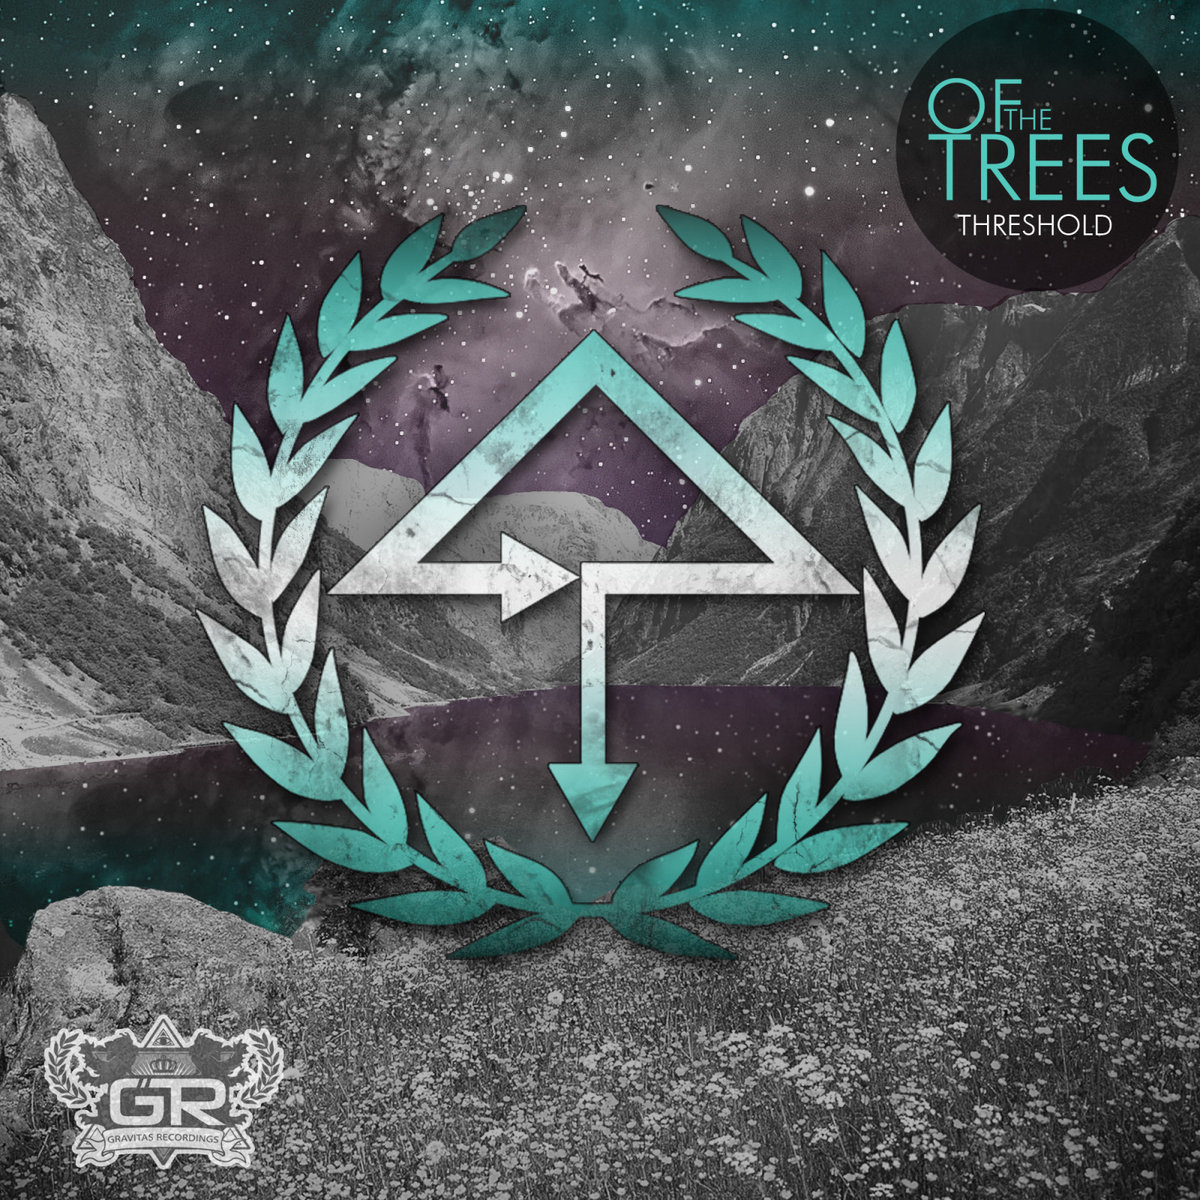 Of The Trees - Tion Cluster @ 'Threshold' album (808, dope music)